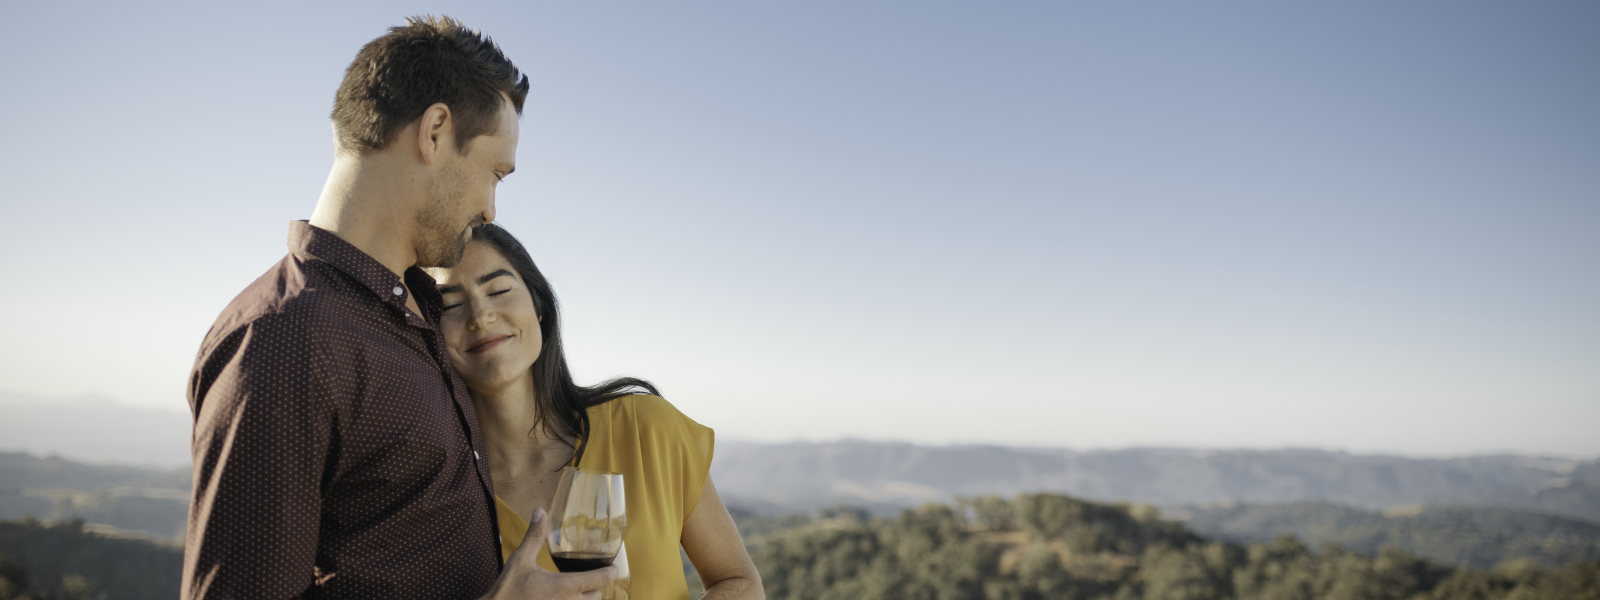 Man and Woman Hugging Outdoors While Drinking Wine